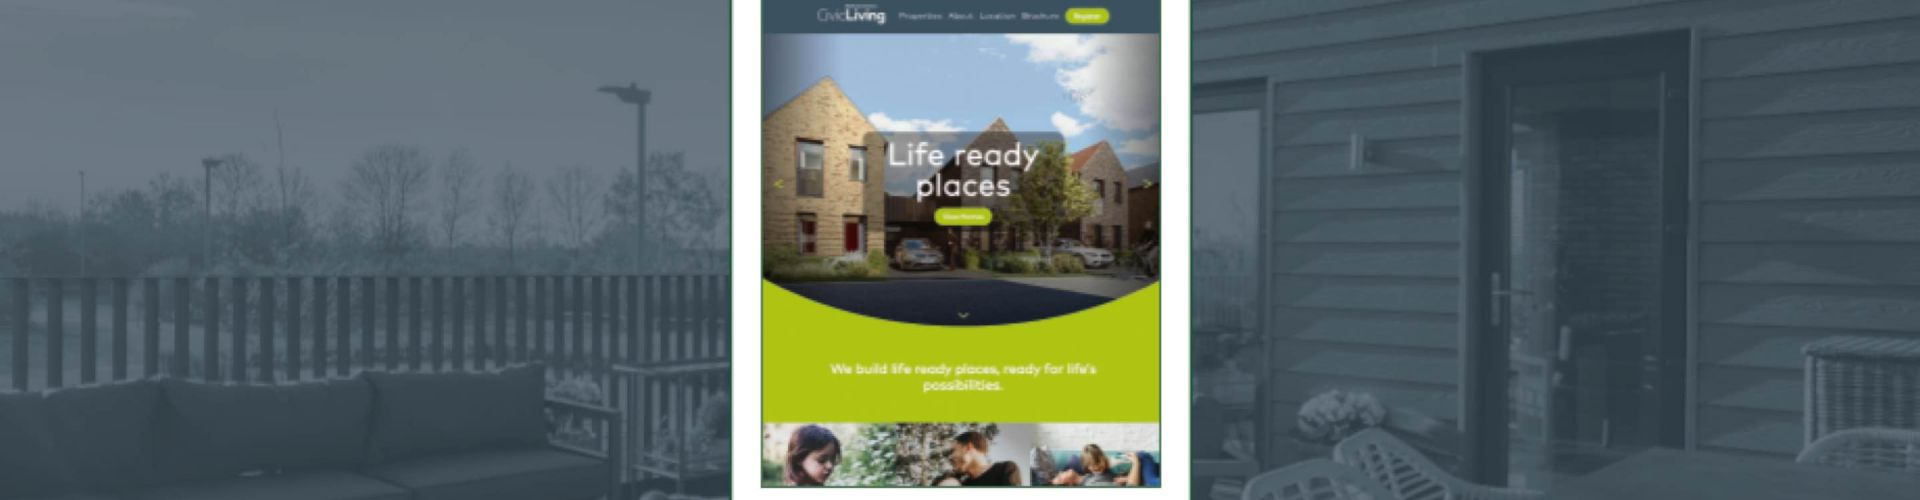 Case study Launch of Civic Living _Banner.jpg